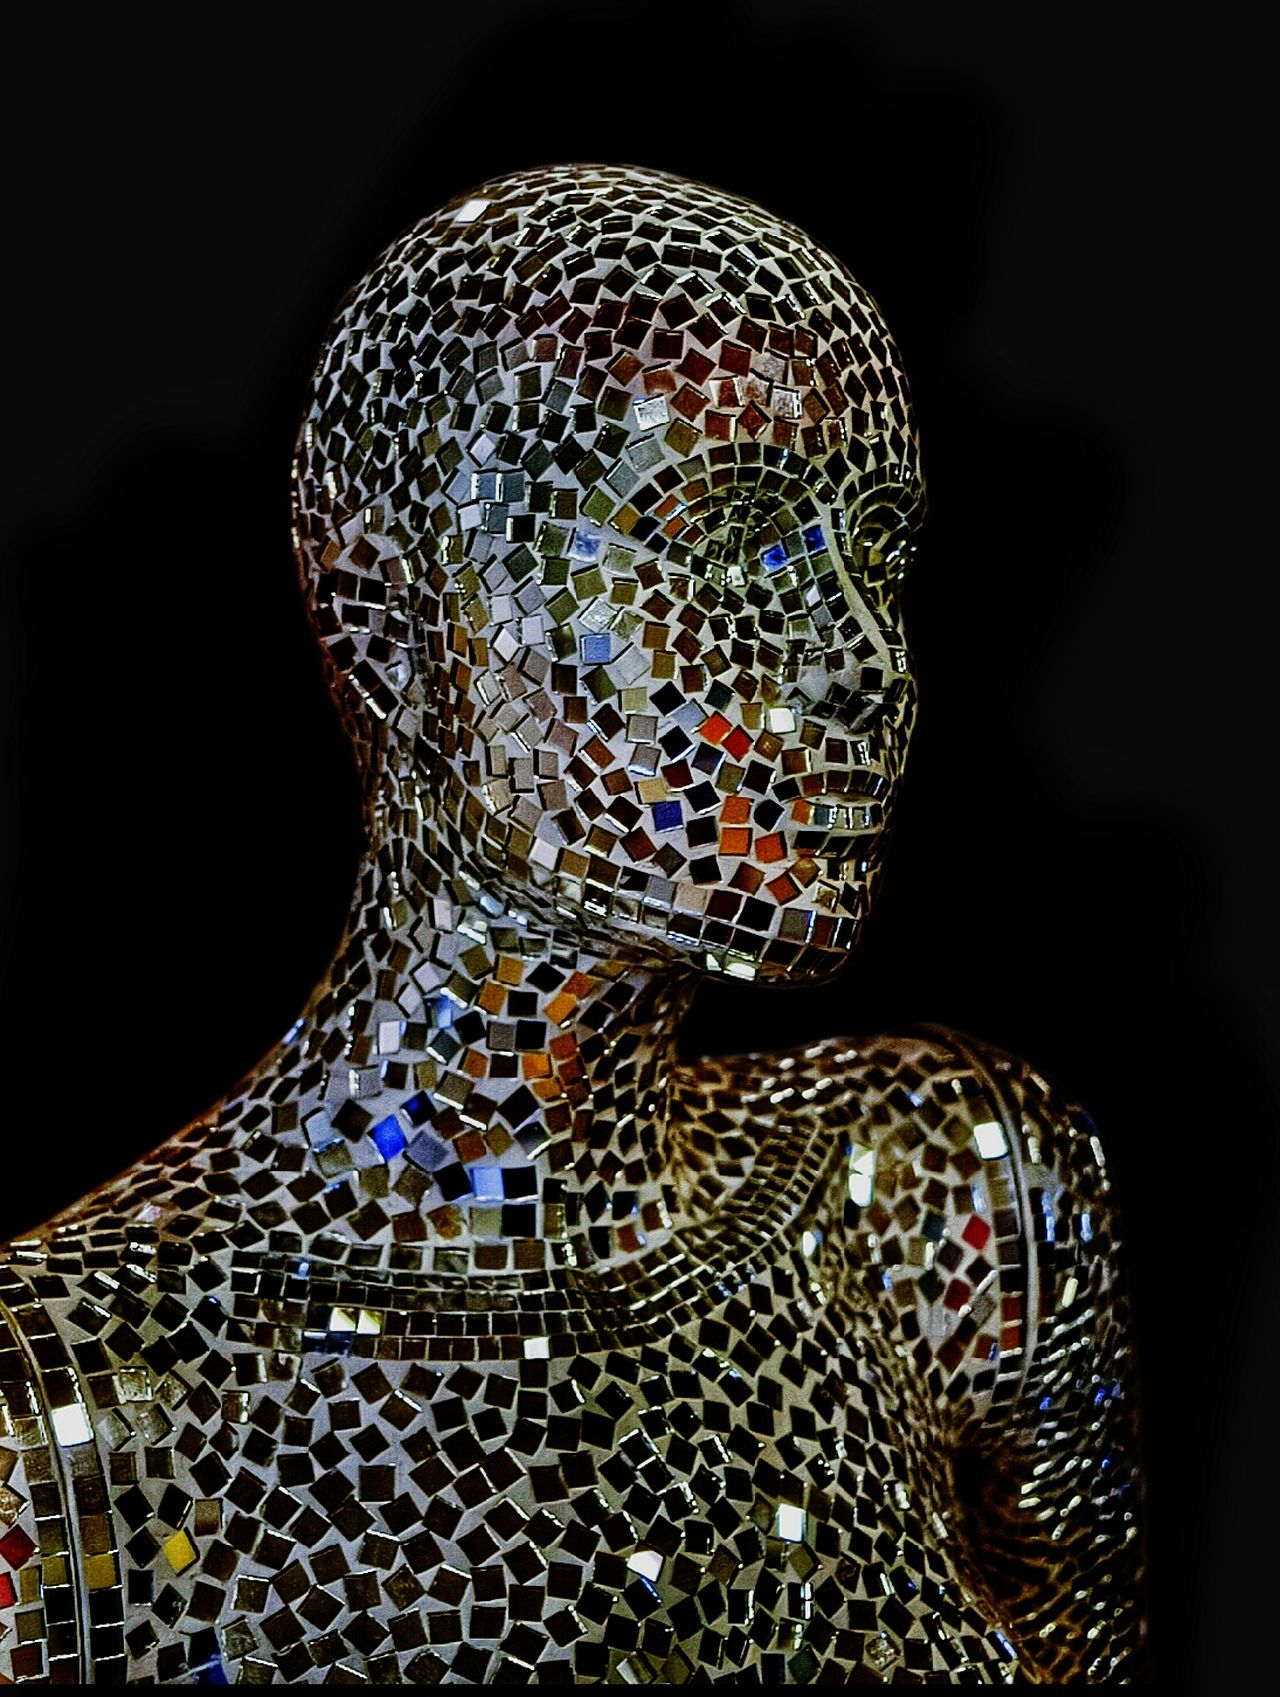 Head And Shoulders Bejewelled Mirrors Pivotal Ideas Colours HEAD Shoulders Dummy Heads Dummys Dummy Manakin Mosaic Tiles Mosaic MosaicsMosaic Art Mosaic Glass Structure Pattern Pieces Creativity The Innovator Human Meets Technology FuturisticRobotic Androgynous Androgyny